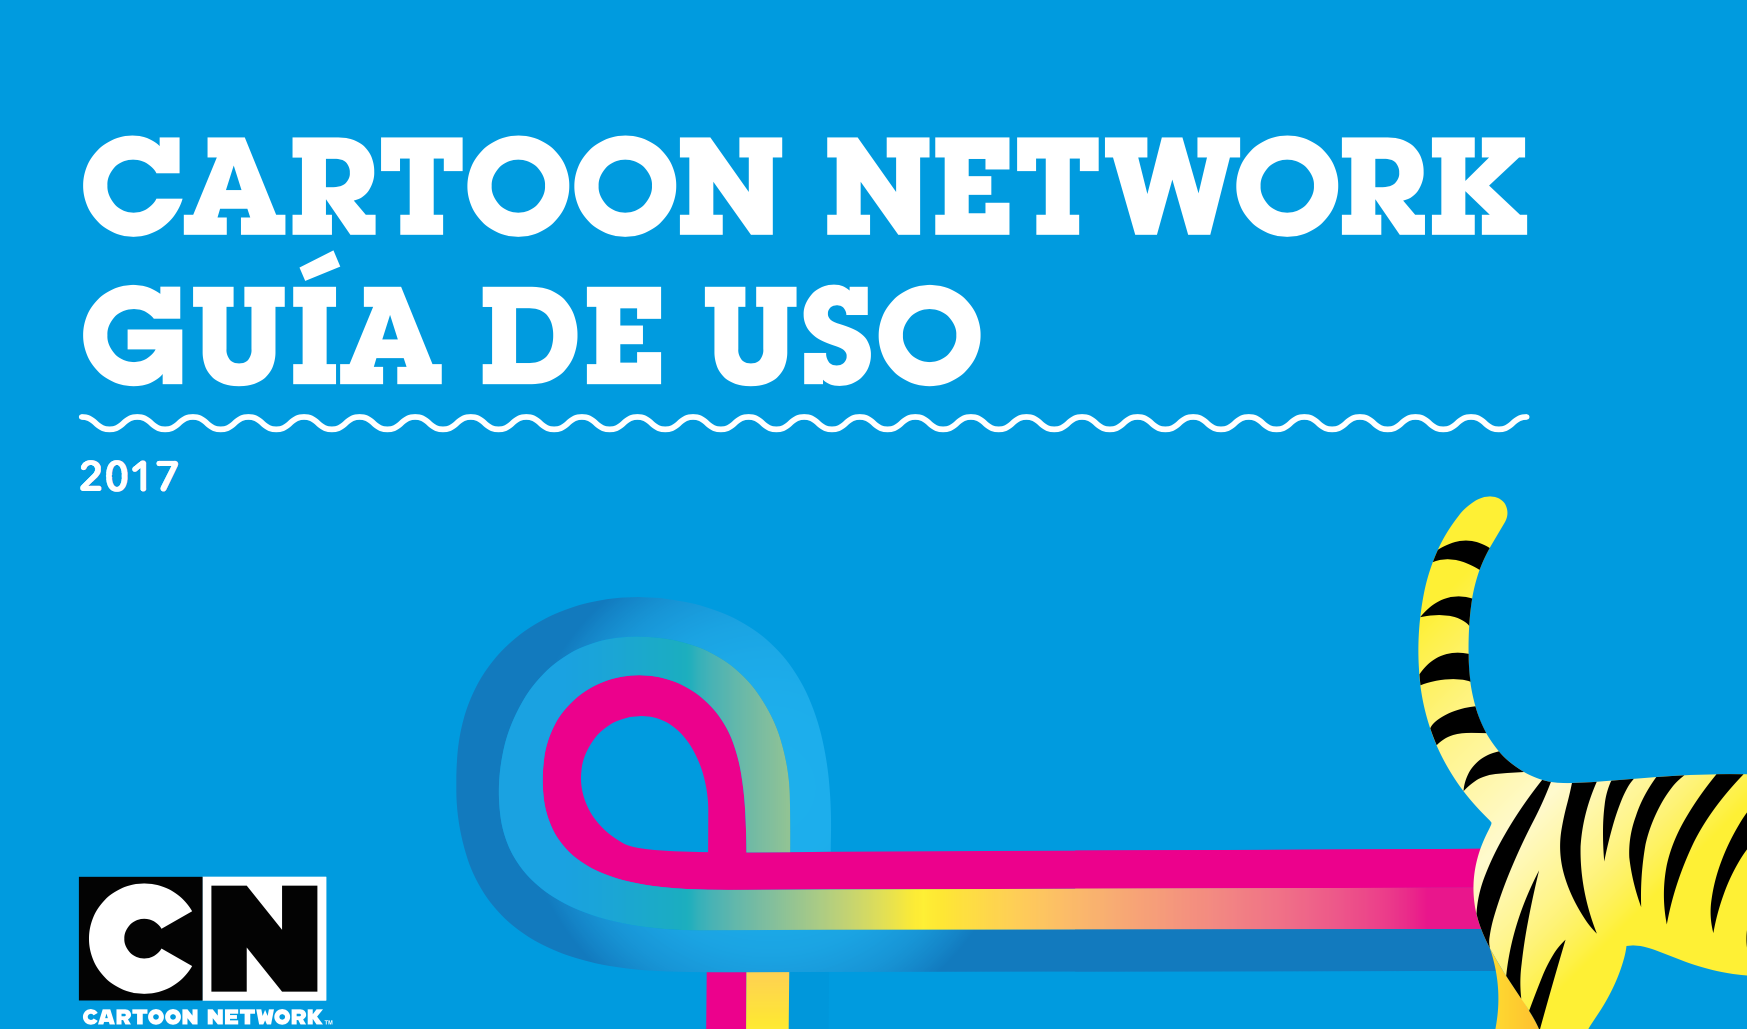 CARTOON NETWORK STYLE GUIDE FOR LATIN AMERICA